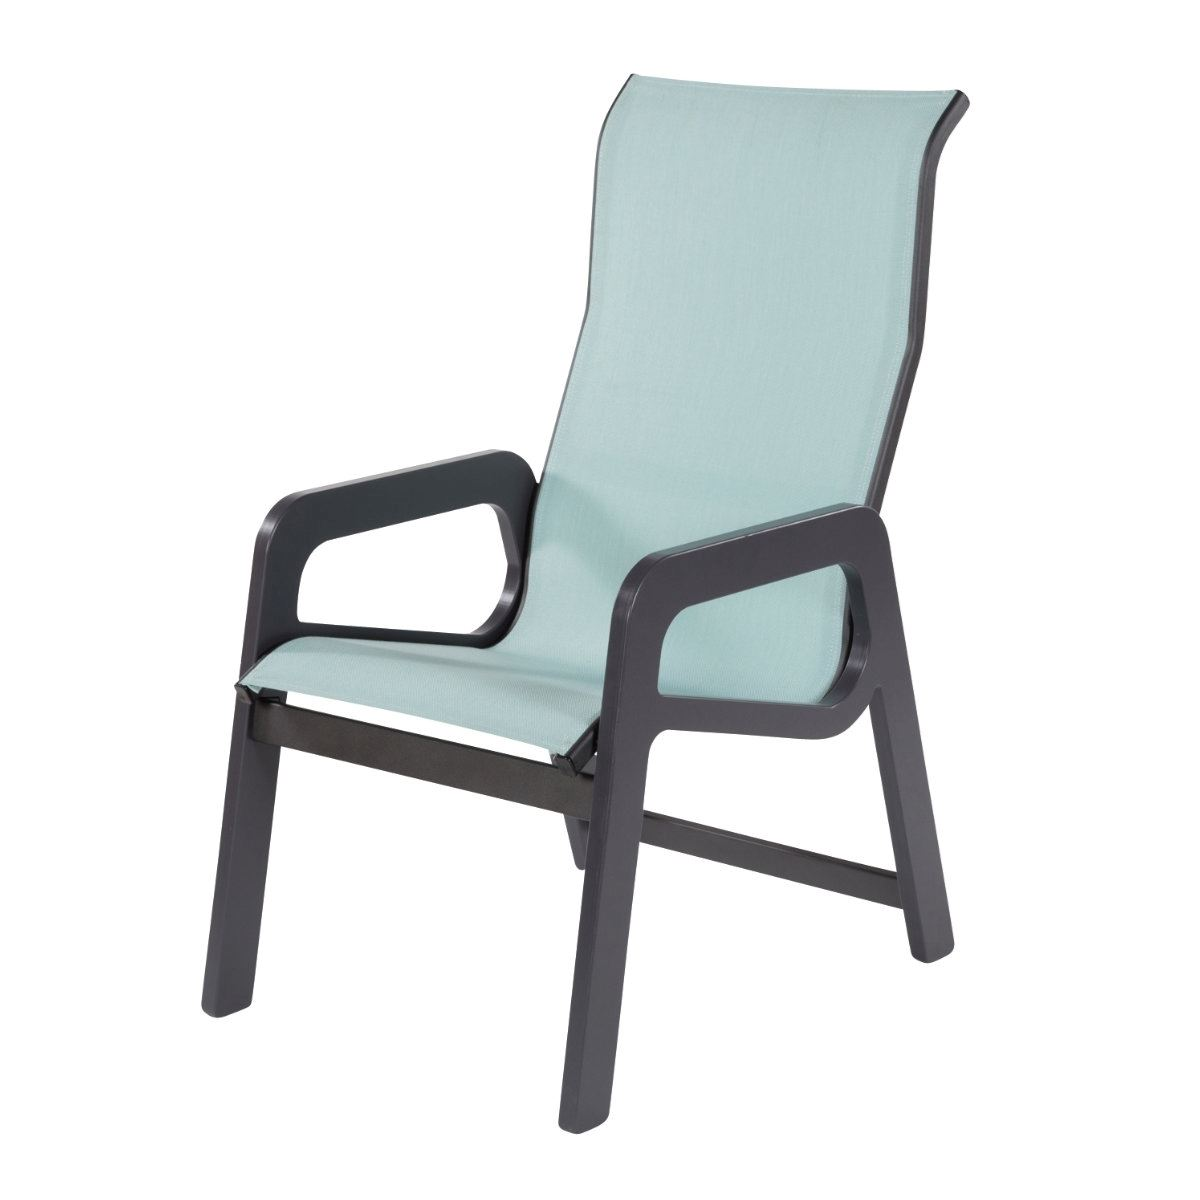 Malibu High Back Dining Arm Chair Fabric Sling With Marine Grade Polymer Stackable Frame 21 Lbs